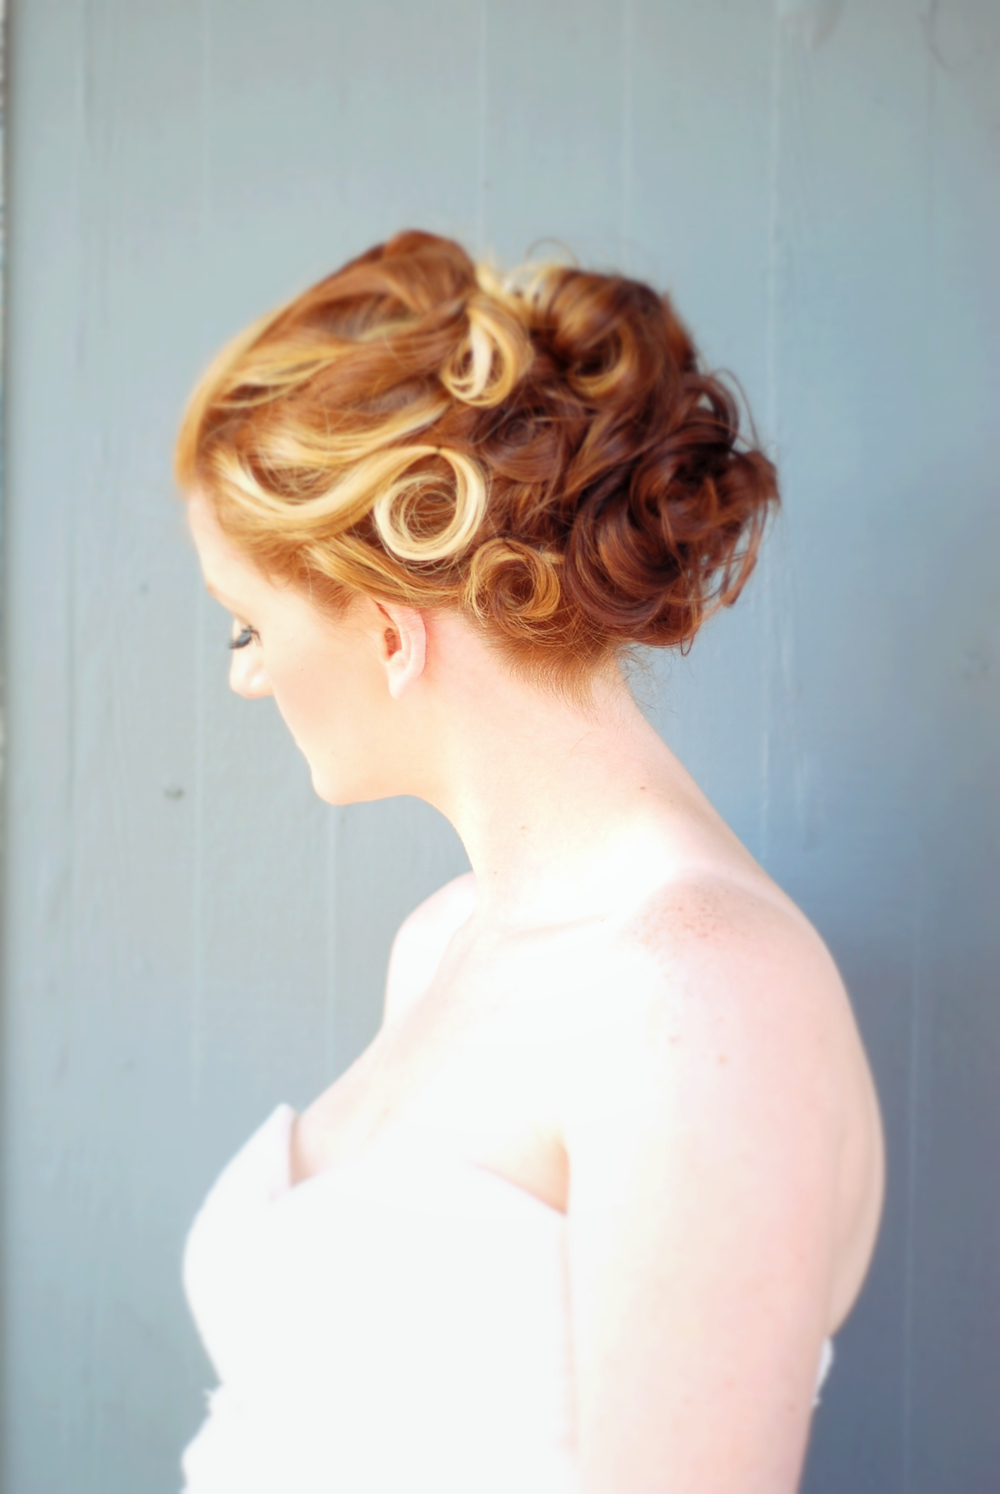 Hair Color: Mari Mabin Beardsley  Makeup: Mari Mabin Beardsley  Bridal Updo: Ashlee McKee